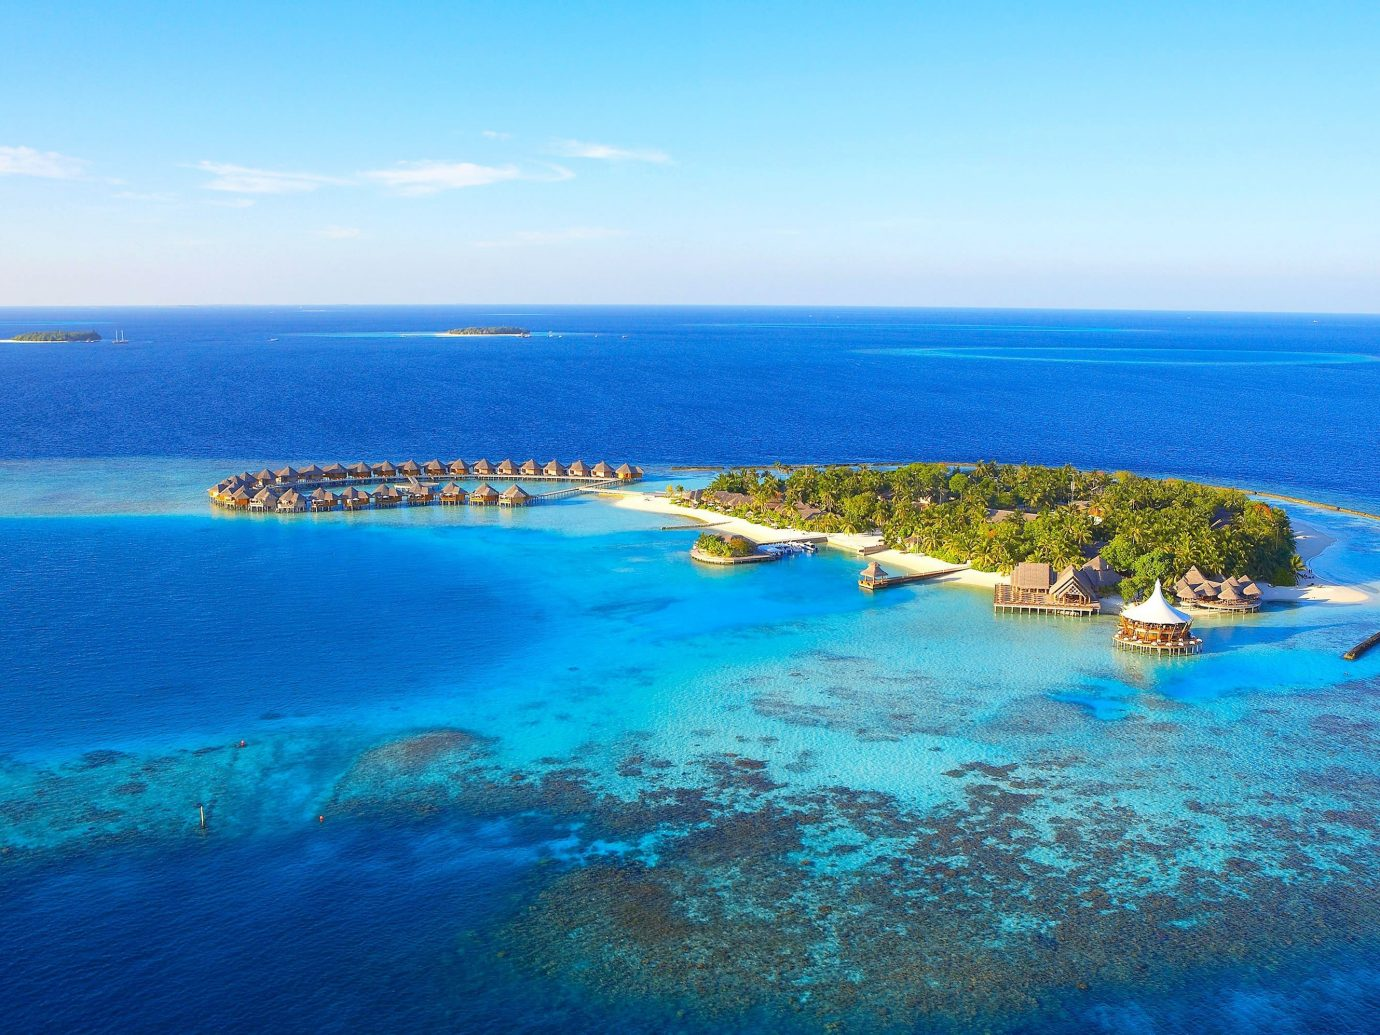 Trip Ideas water sky Nature blue reef Ocean outdoor geographical feature landform Sea archipelago horizon Coast islet caribbean Beach bay Island Lagoon cape atoll swimming Resort cove clear shore